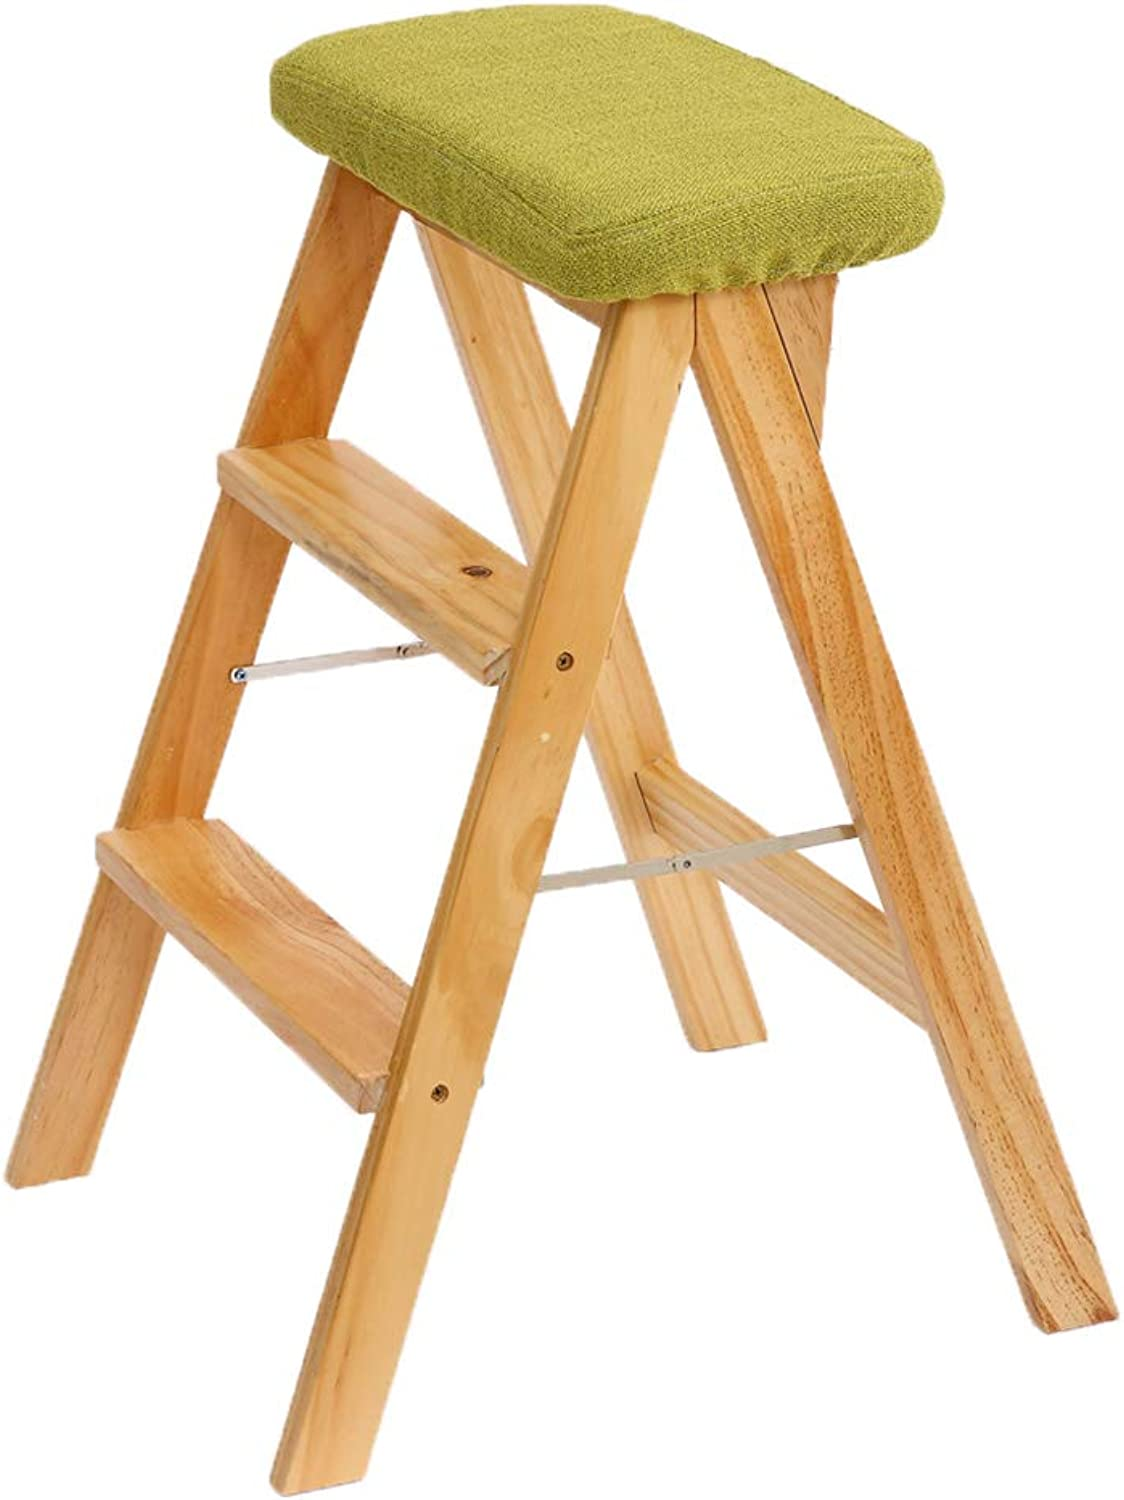 Step Stool High Chair Wooden Ladder Staircase Shelf Stepladder Furniture Wood Folding Widened Multifunction Kitchen Office Home Modern Simple Height 63cm